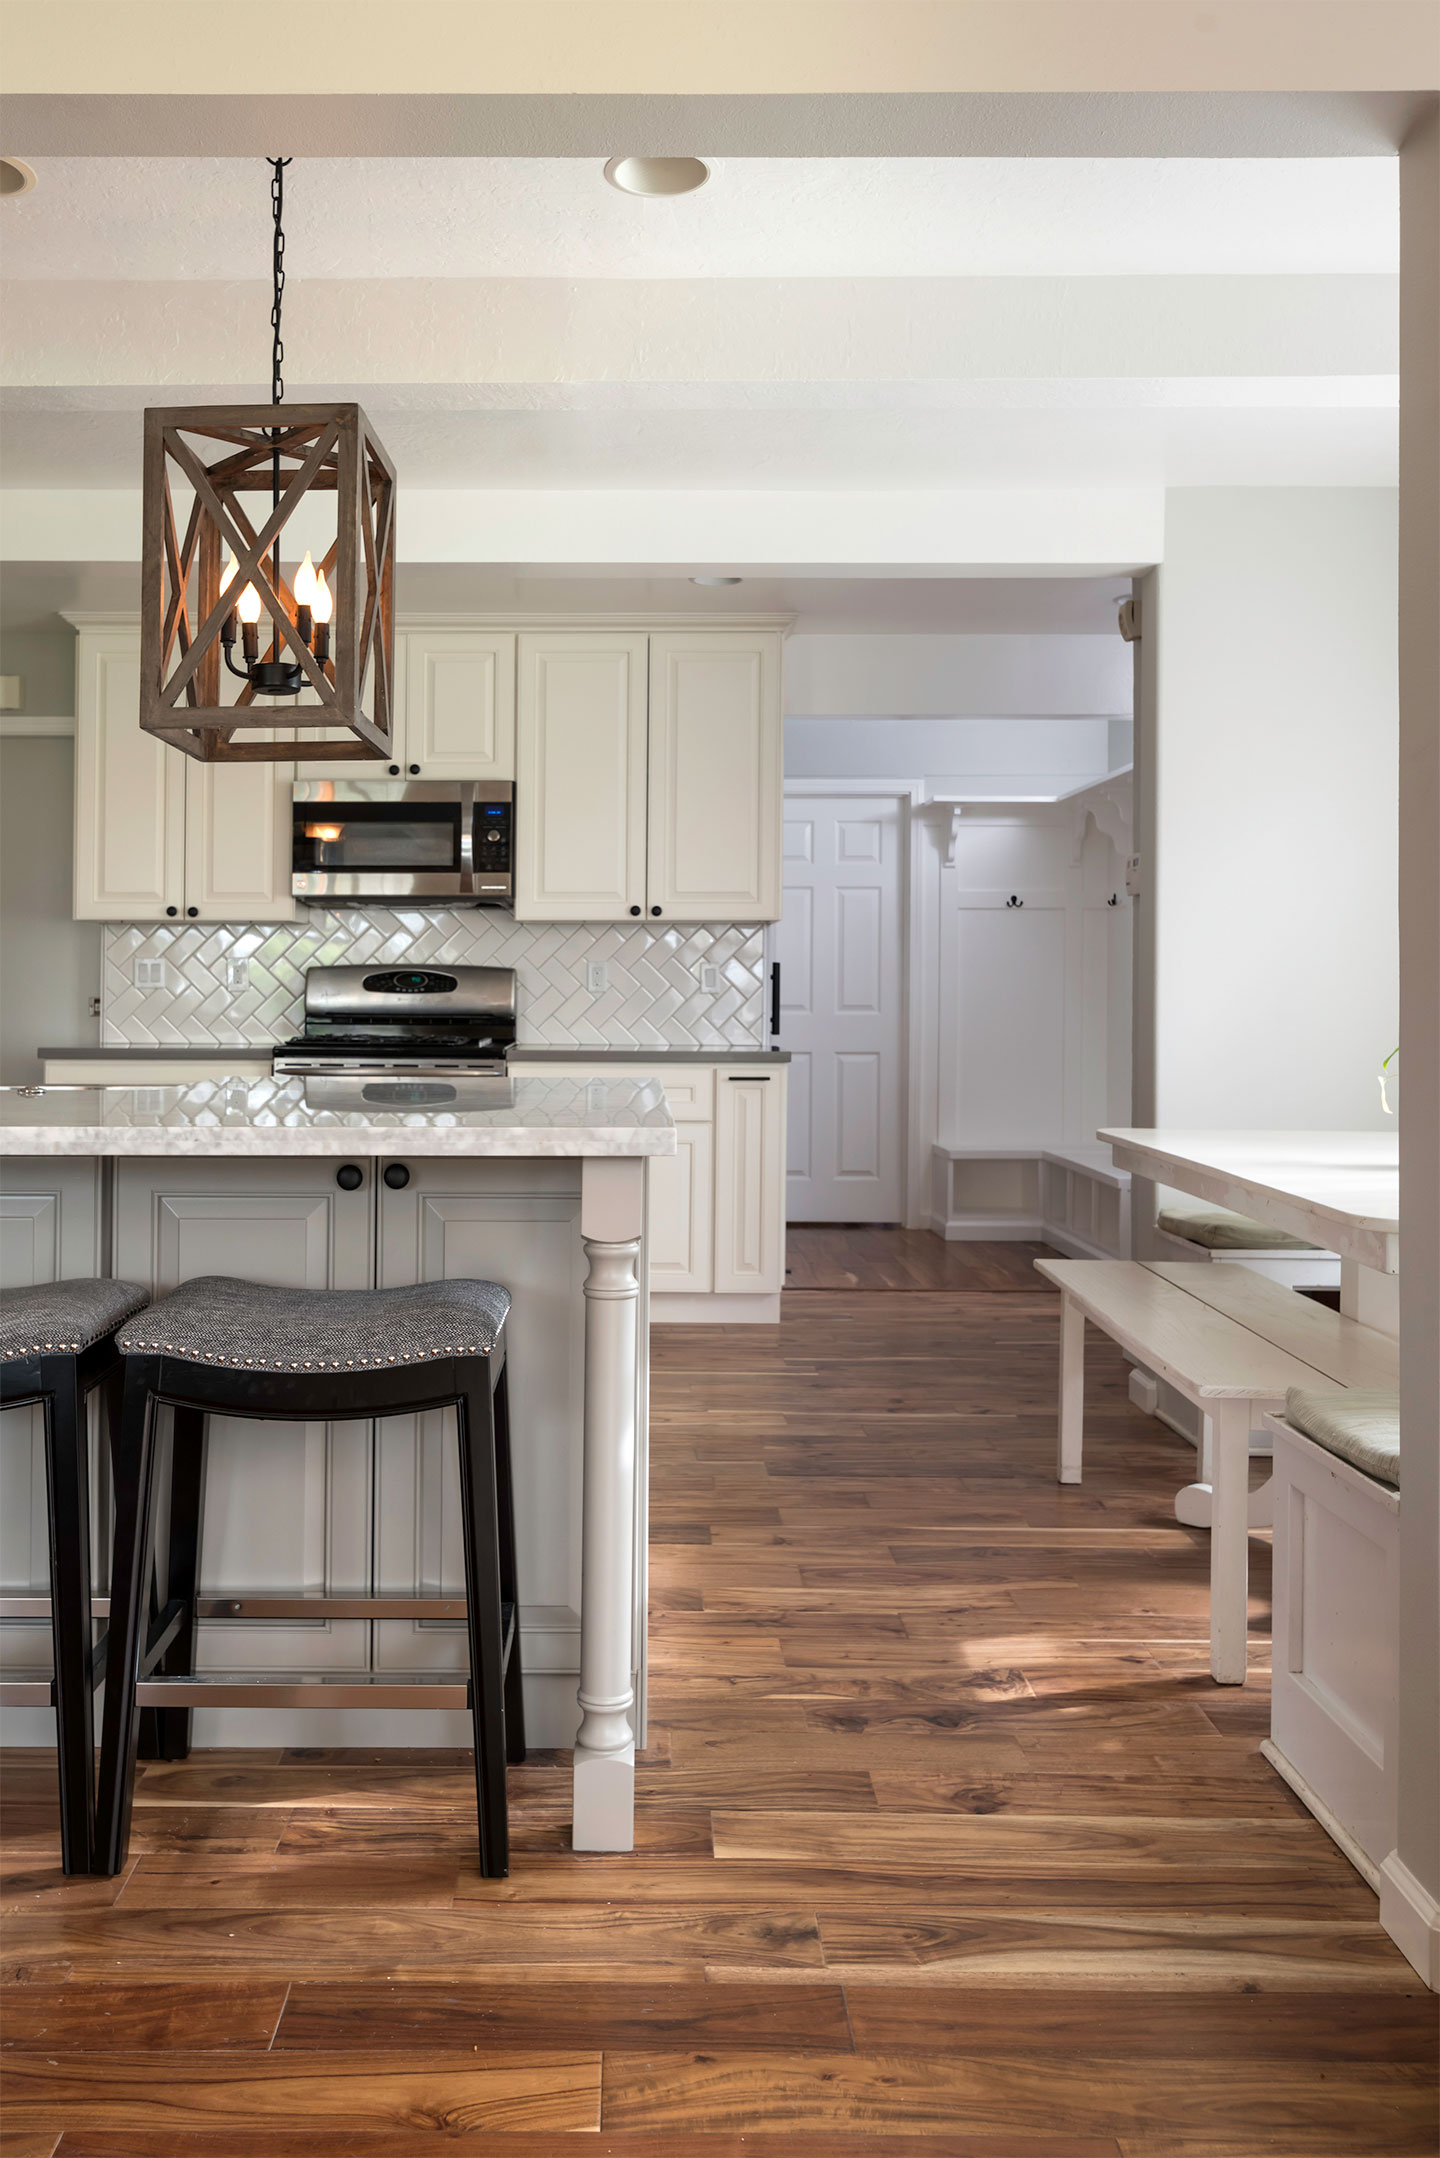 Kitchen remodel in Tulare Ct, Concord, California   Home Quality remodeling